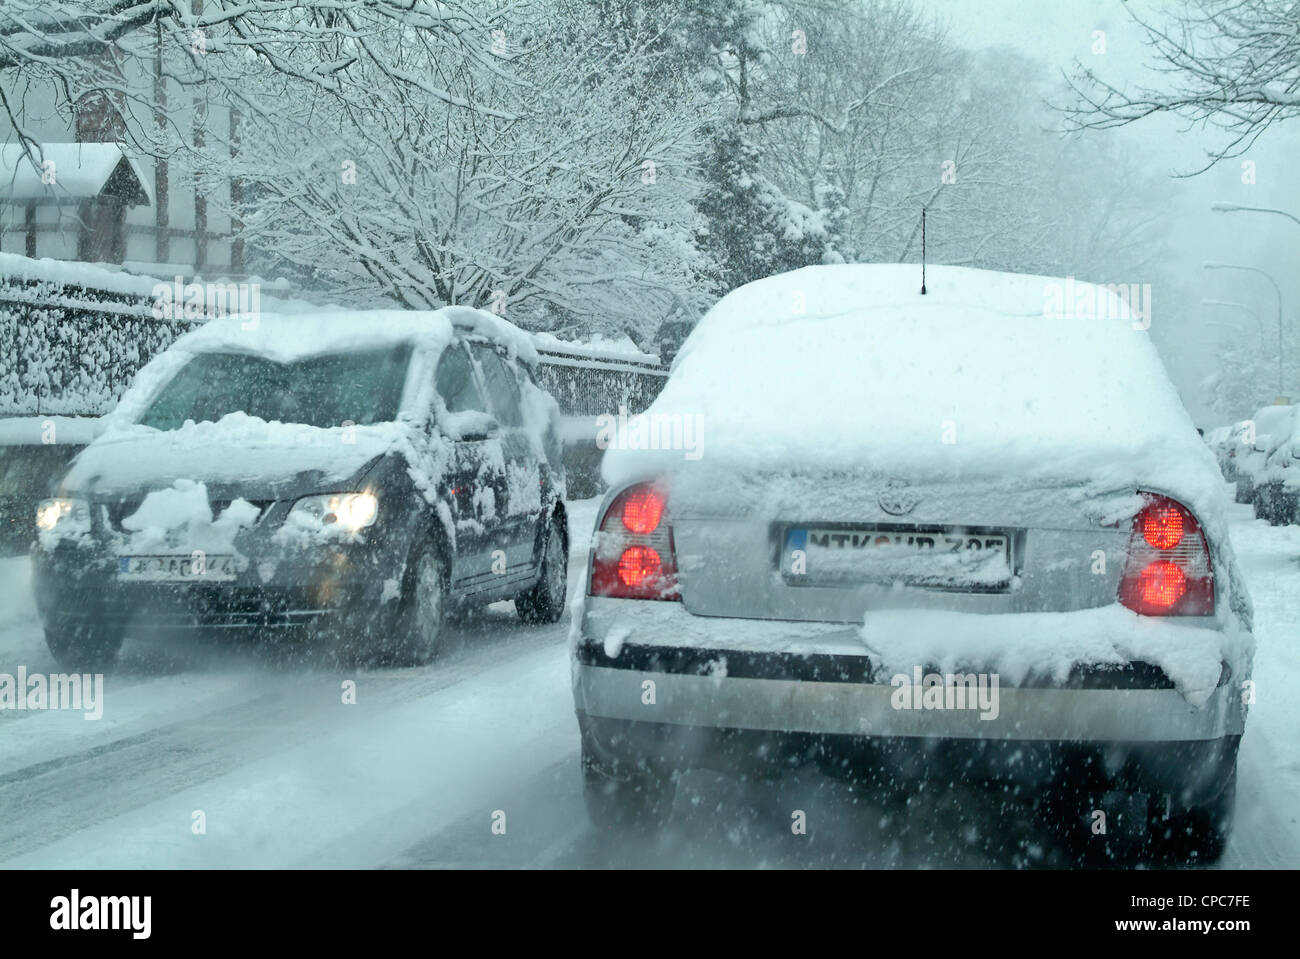 Snow covered cars on a winter road. - Stock Image